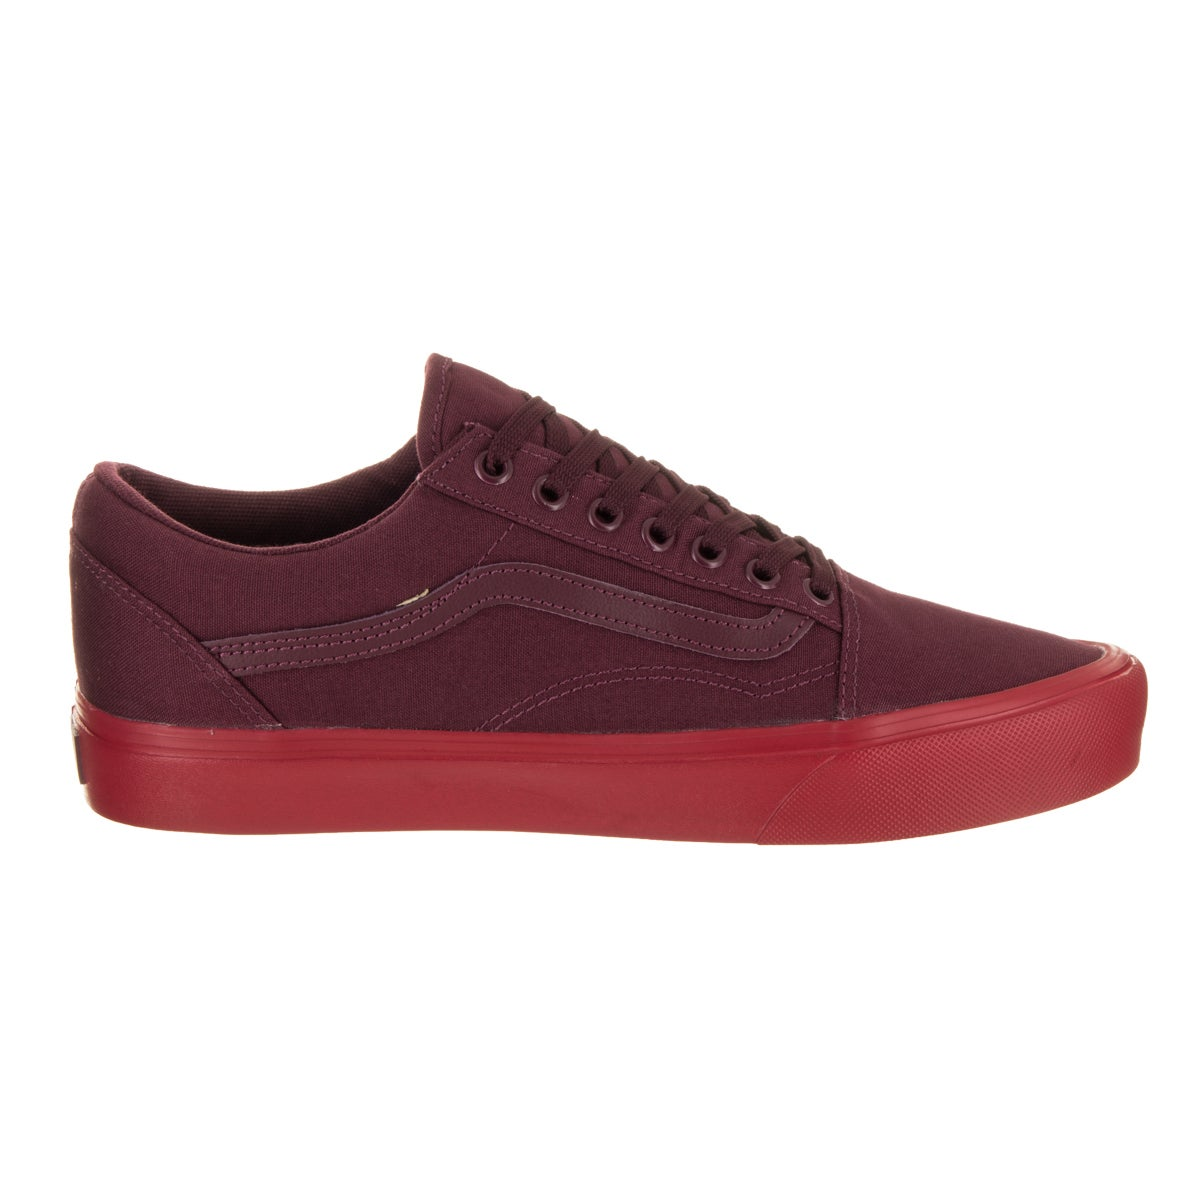 9d6734b08480 Shop Vans Unisex Old Skool Lite (Pop Sole) Red Canvas Skate Shoes - Free  Shipping Today - Overstock - 16079699